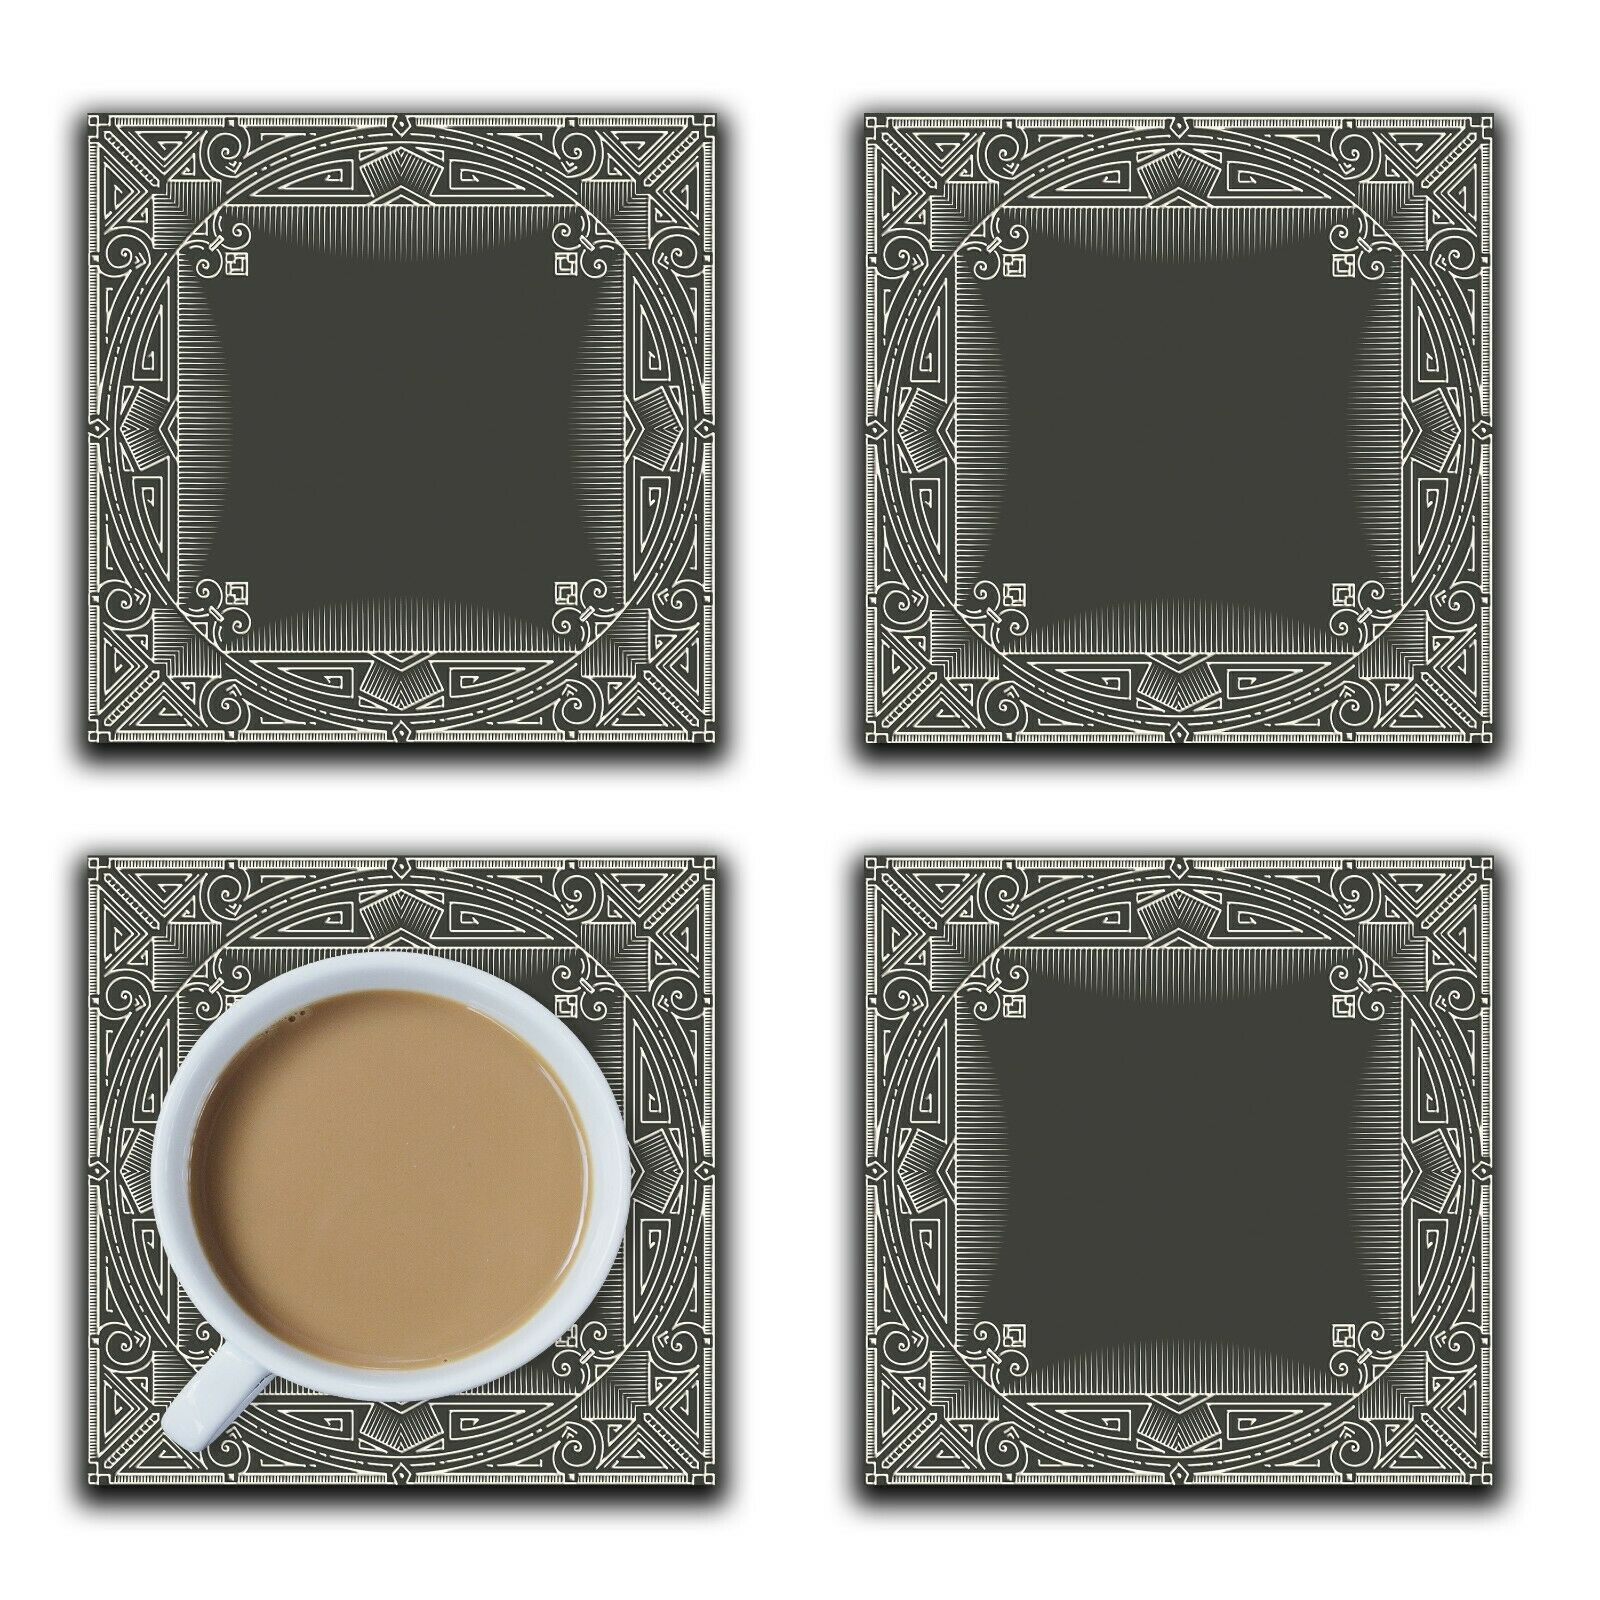 Embossi Printed Art Deco Frame, choose wood or ceramic tile, set of 4